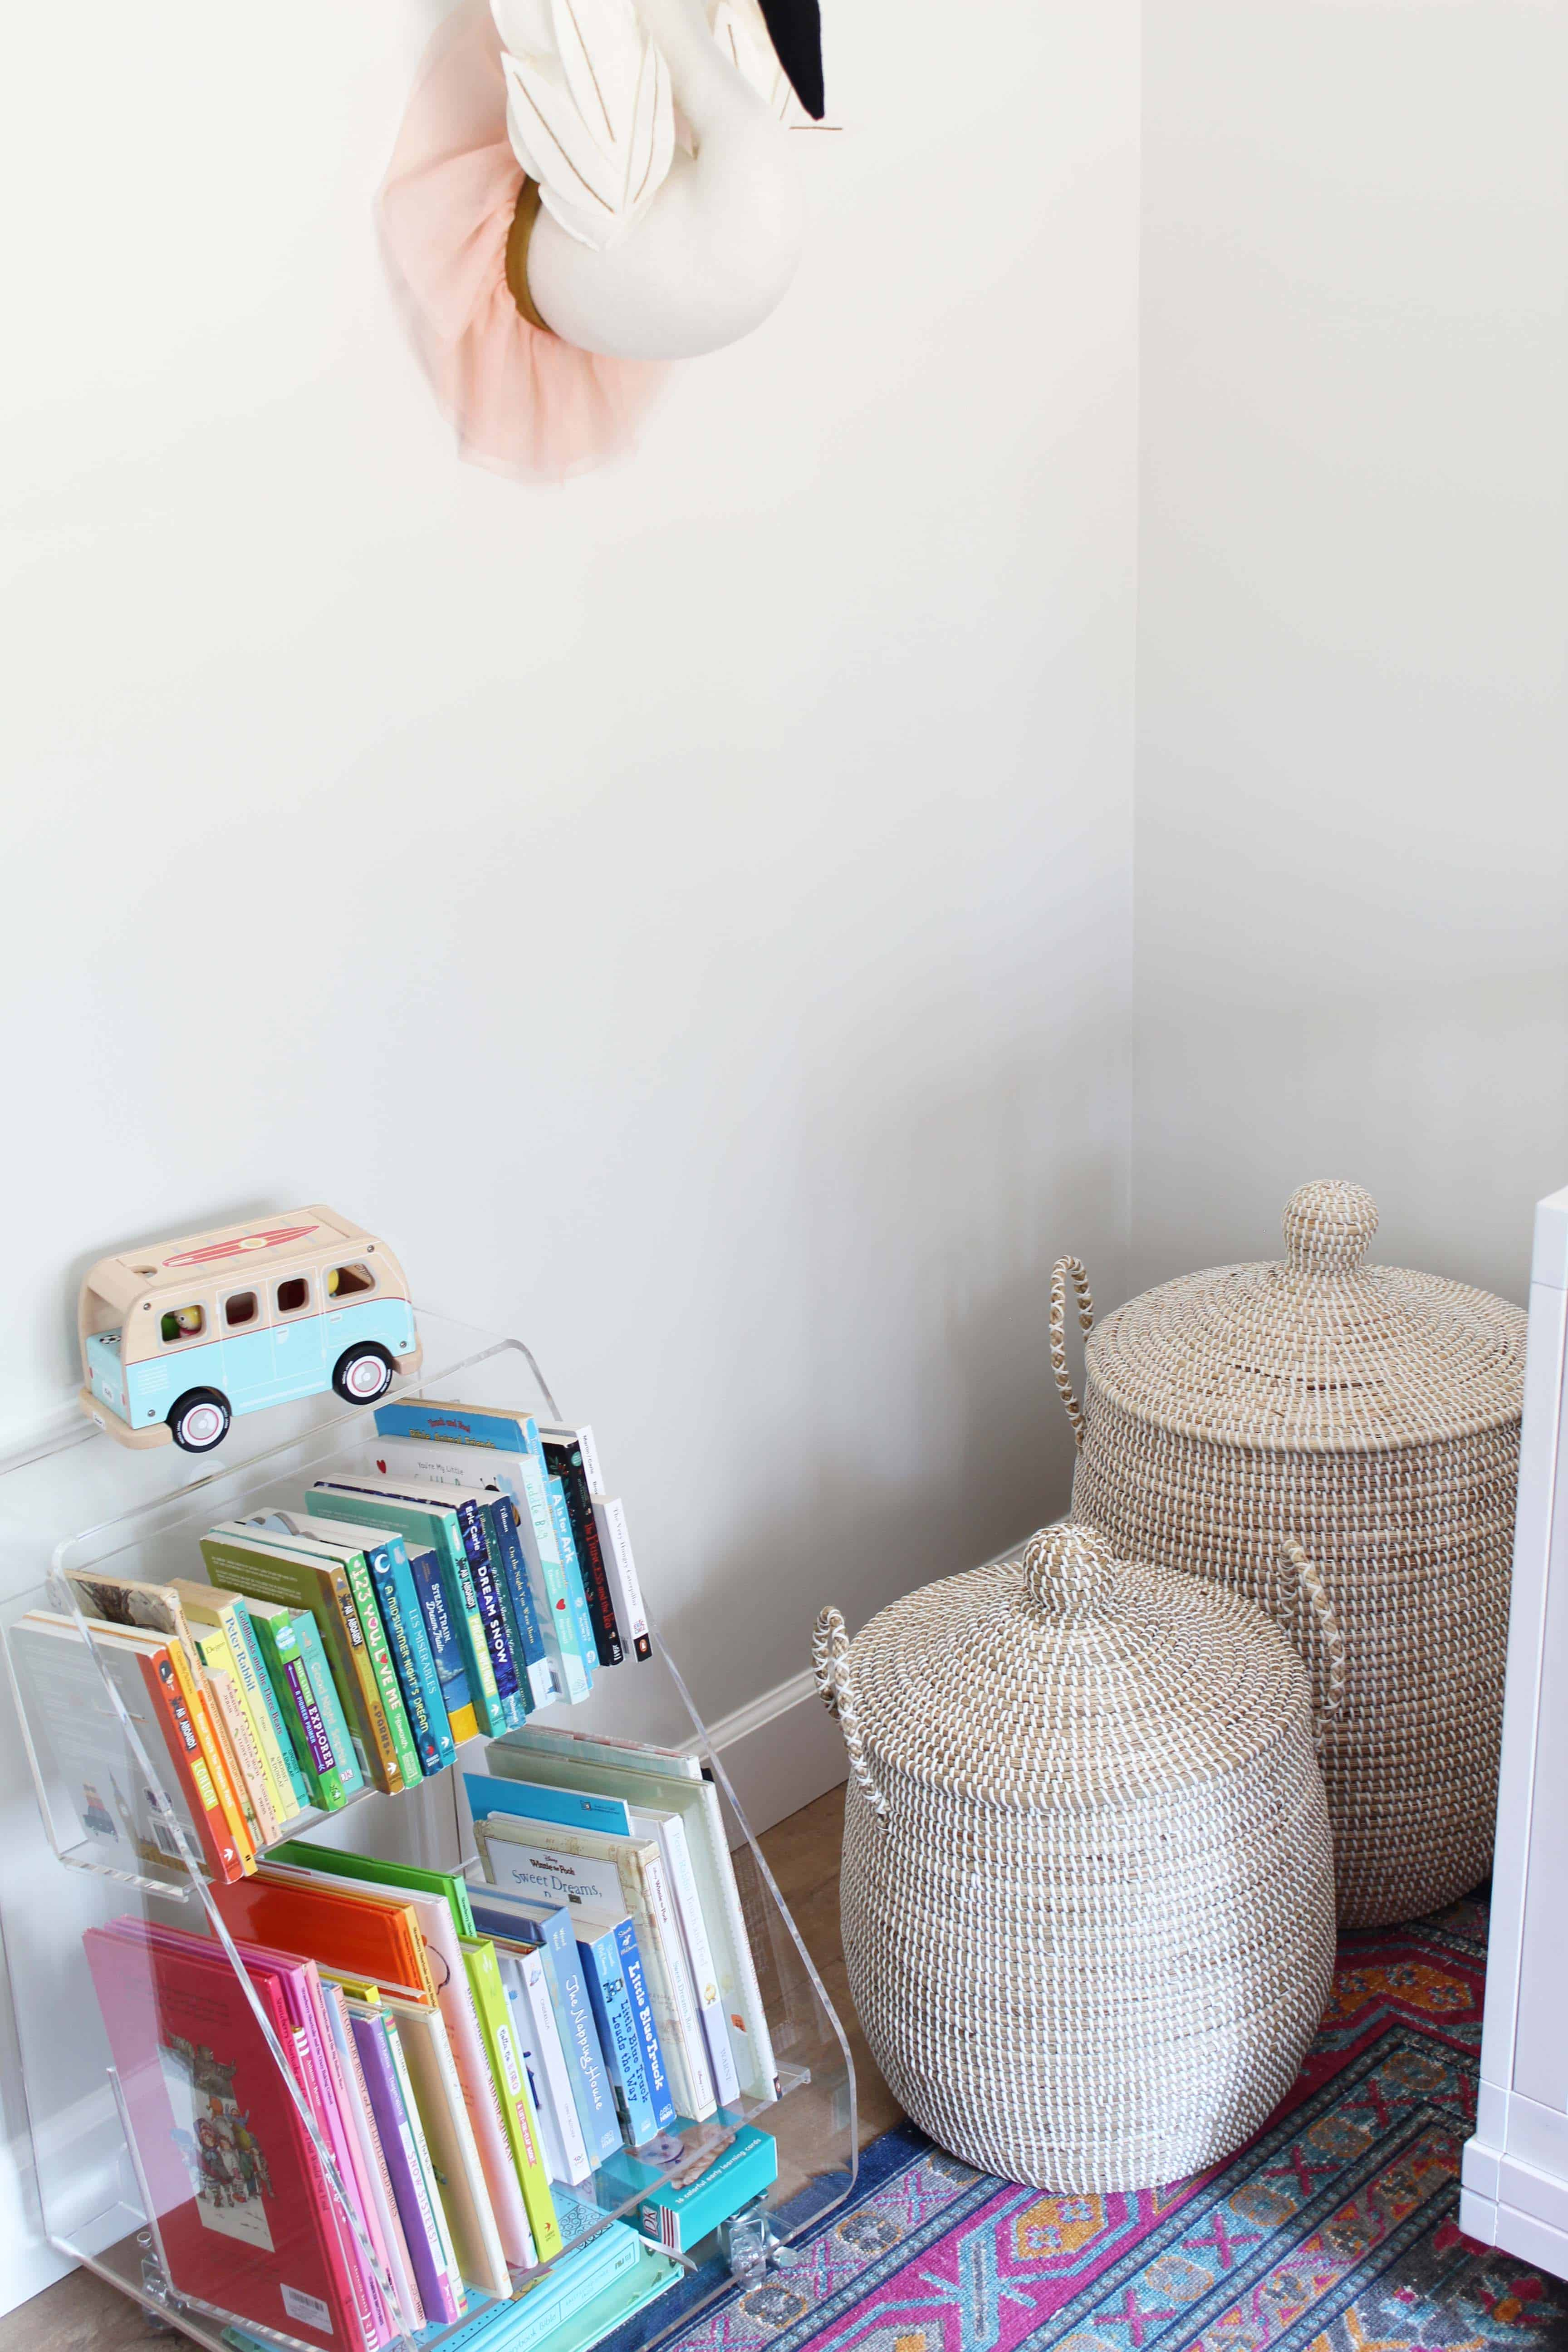 target swan wall head, serena and lily lidded baskets, crate and kids acrylic book cart